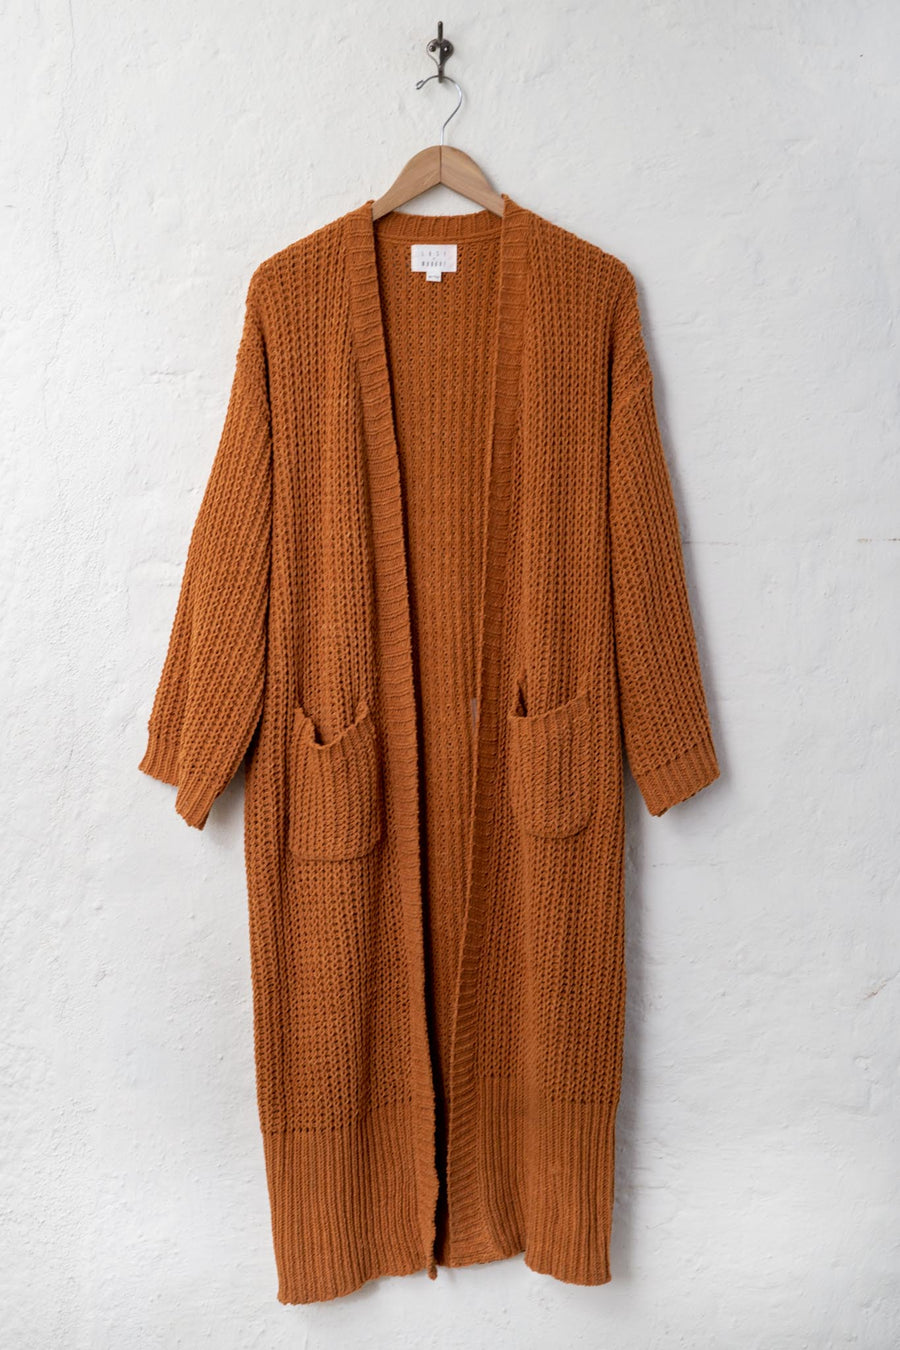 Most Wanted Cardigan - The Canyon